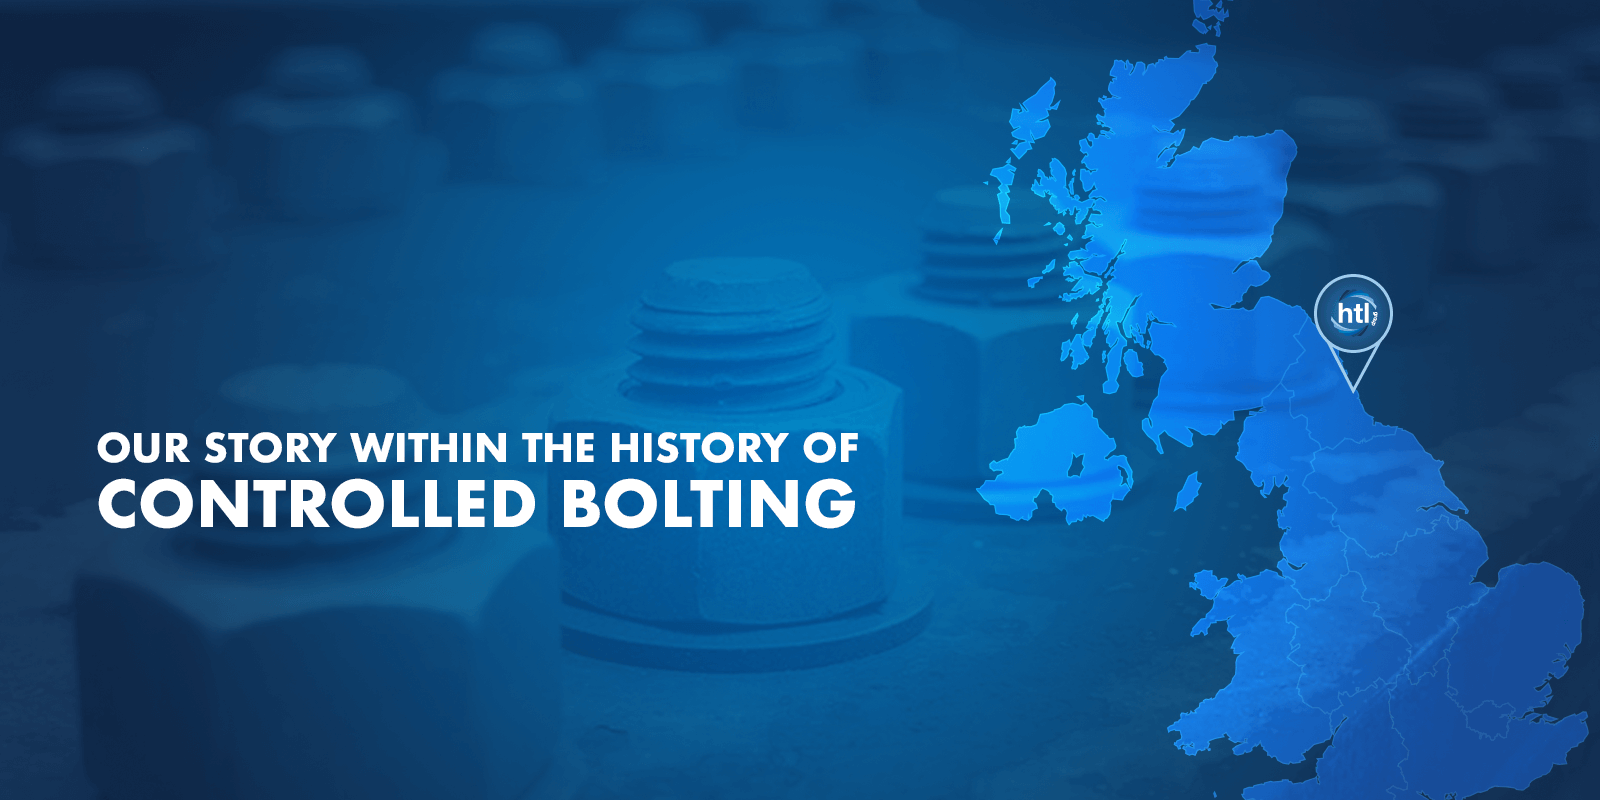 A History of controlled bolting in the North East of England